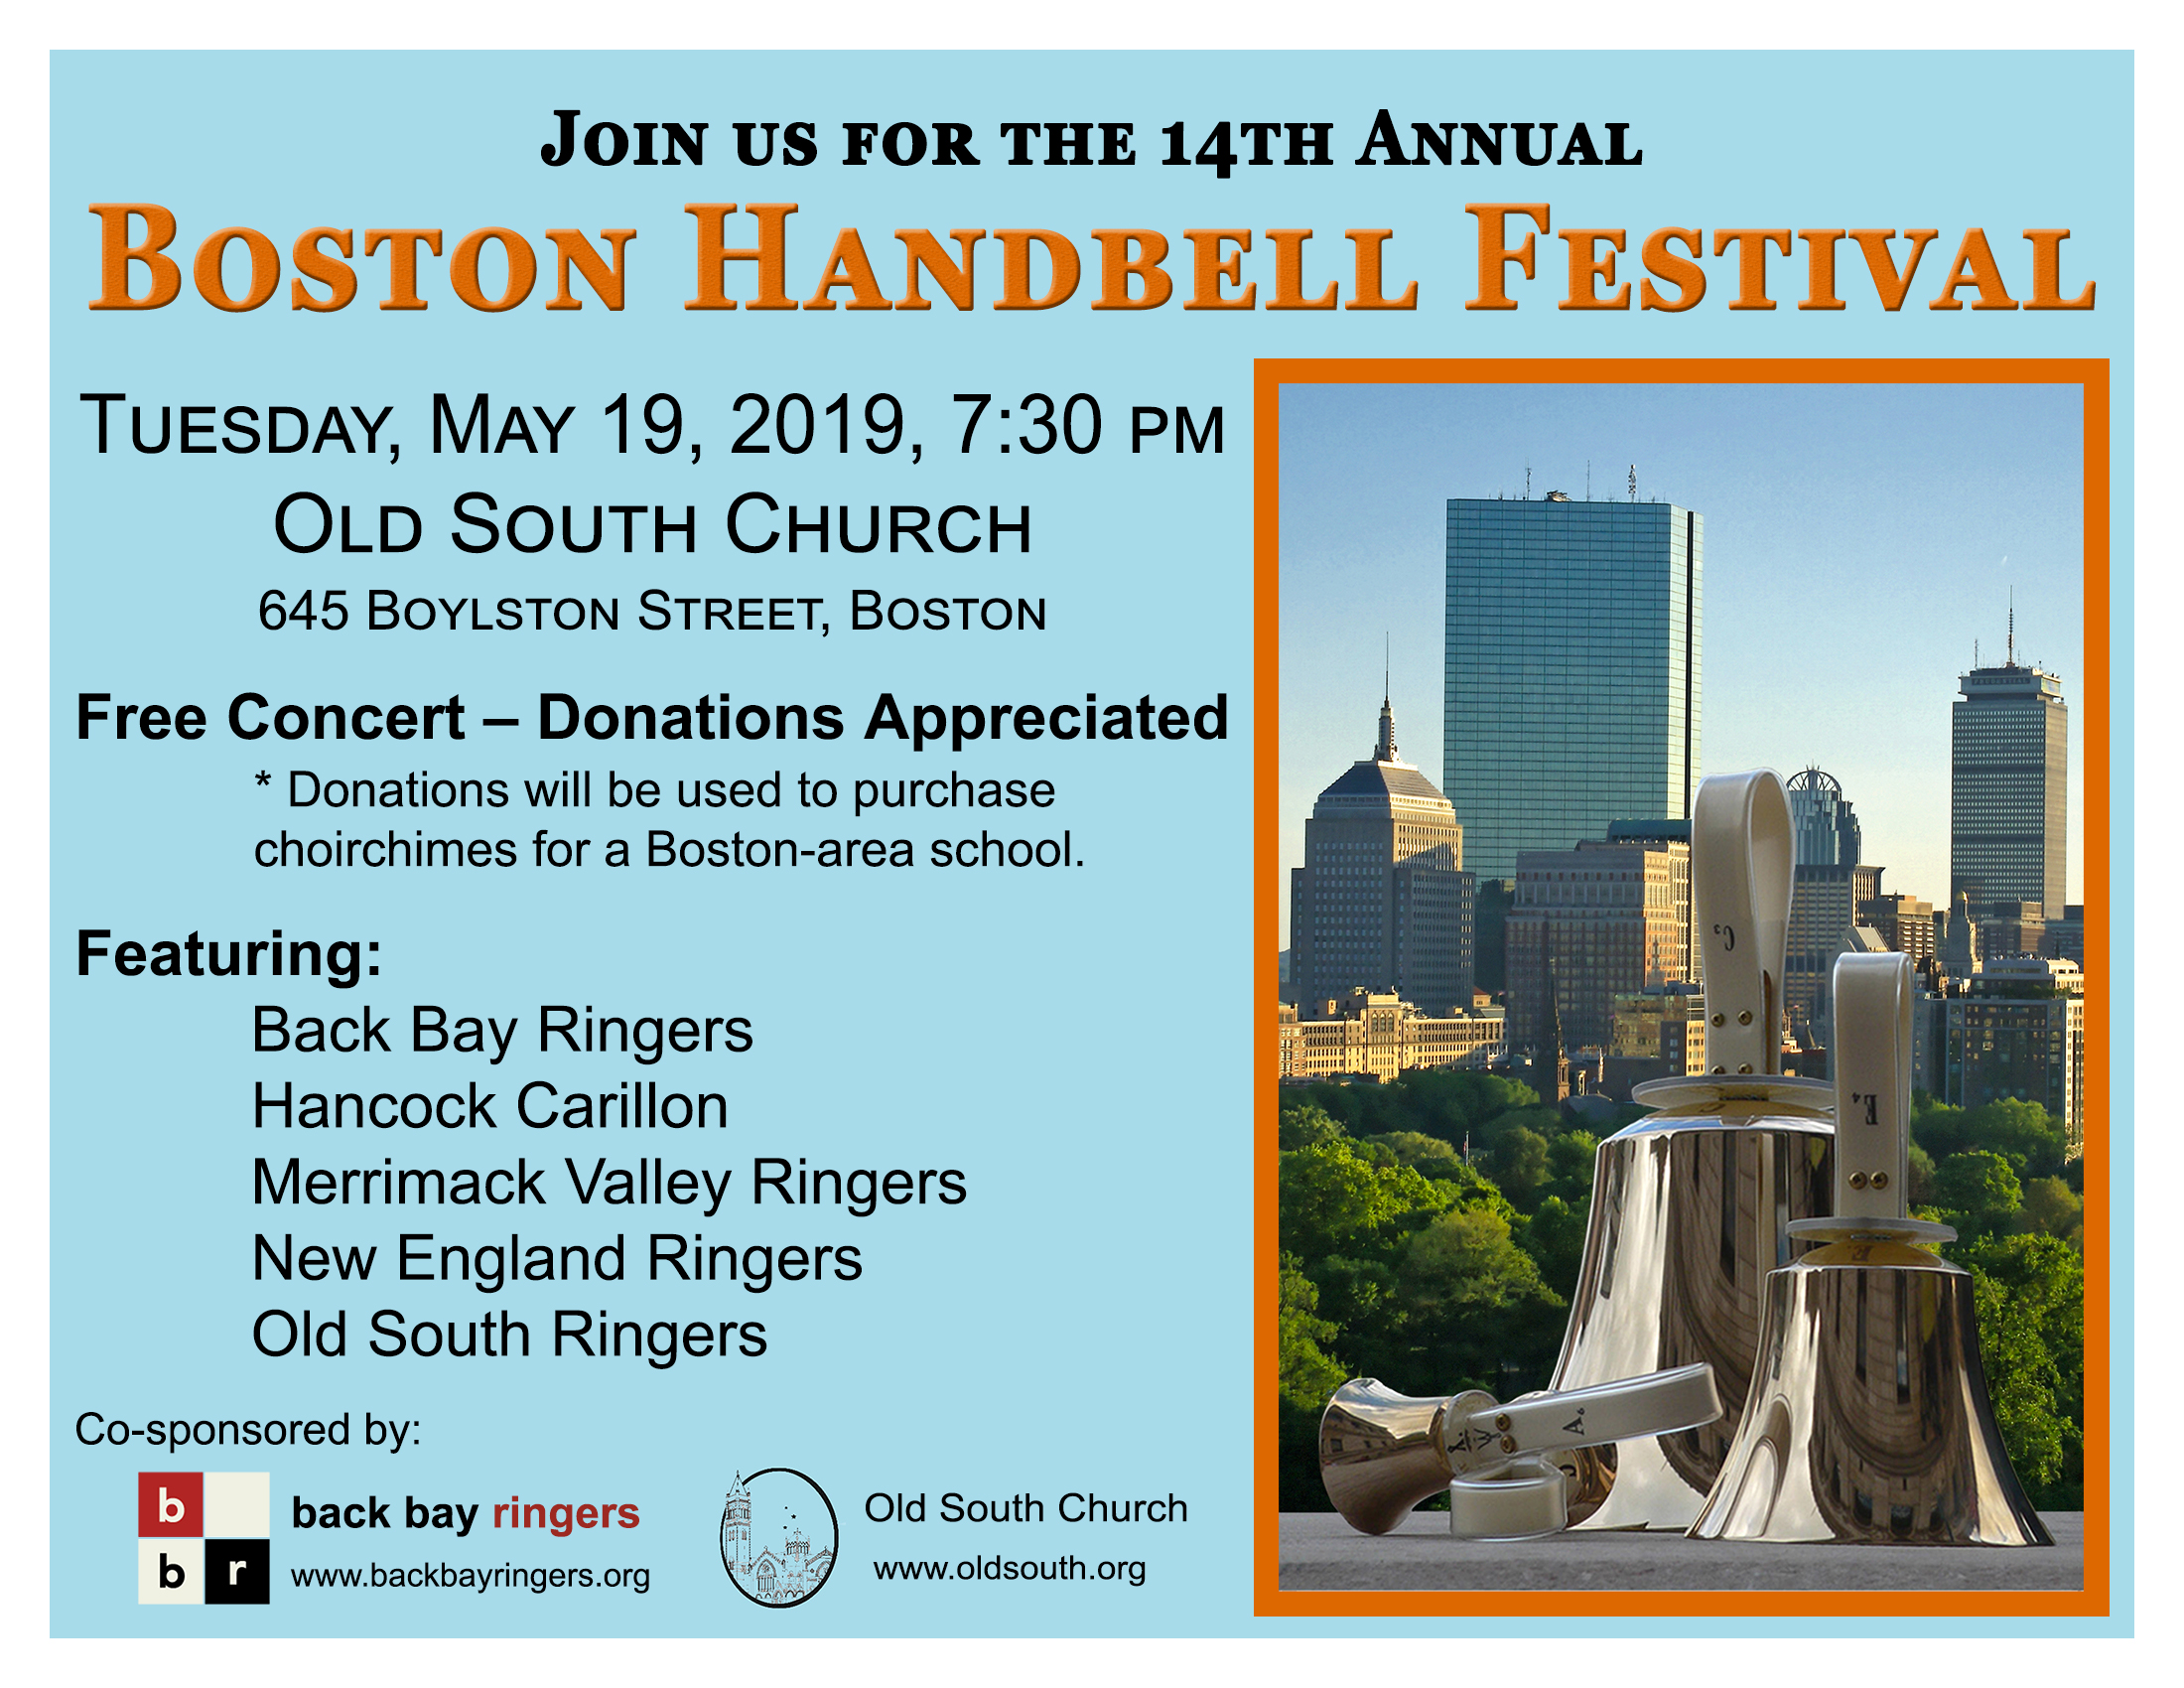 Please join us for the 14th Annual Boston Handbell Festival on May 19, 2020.